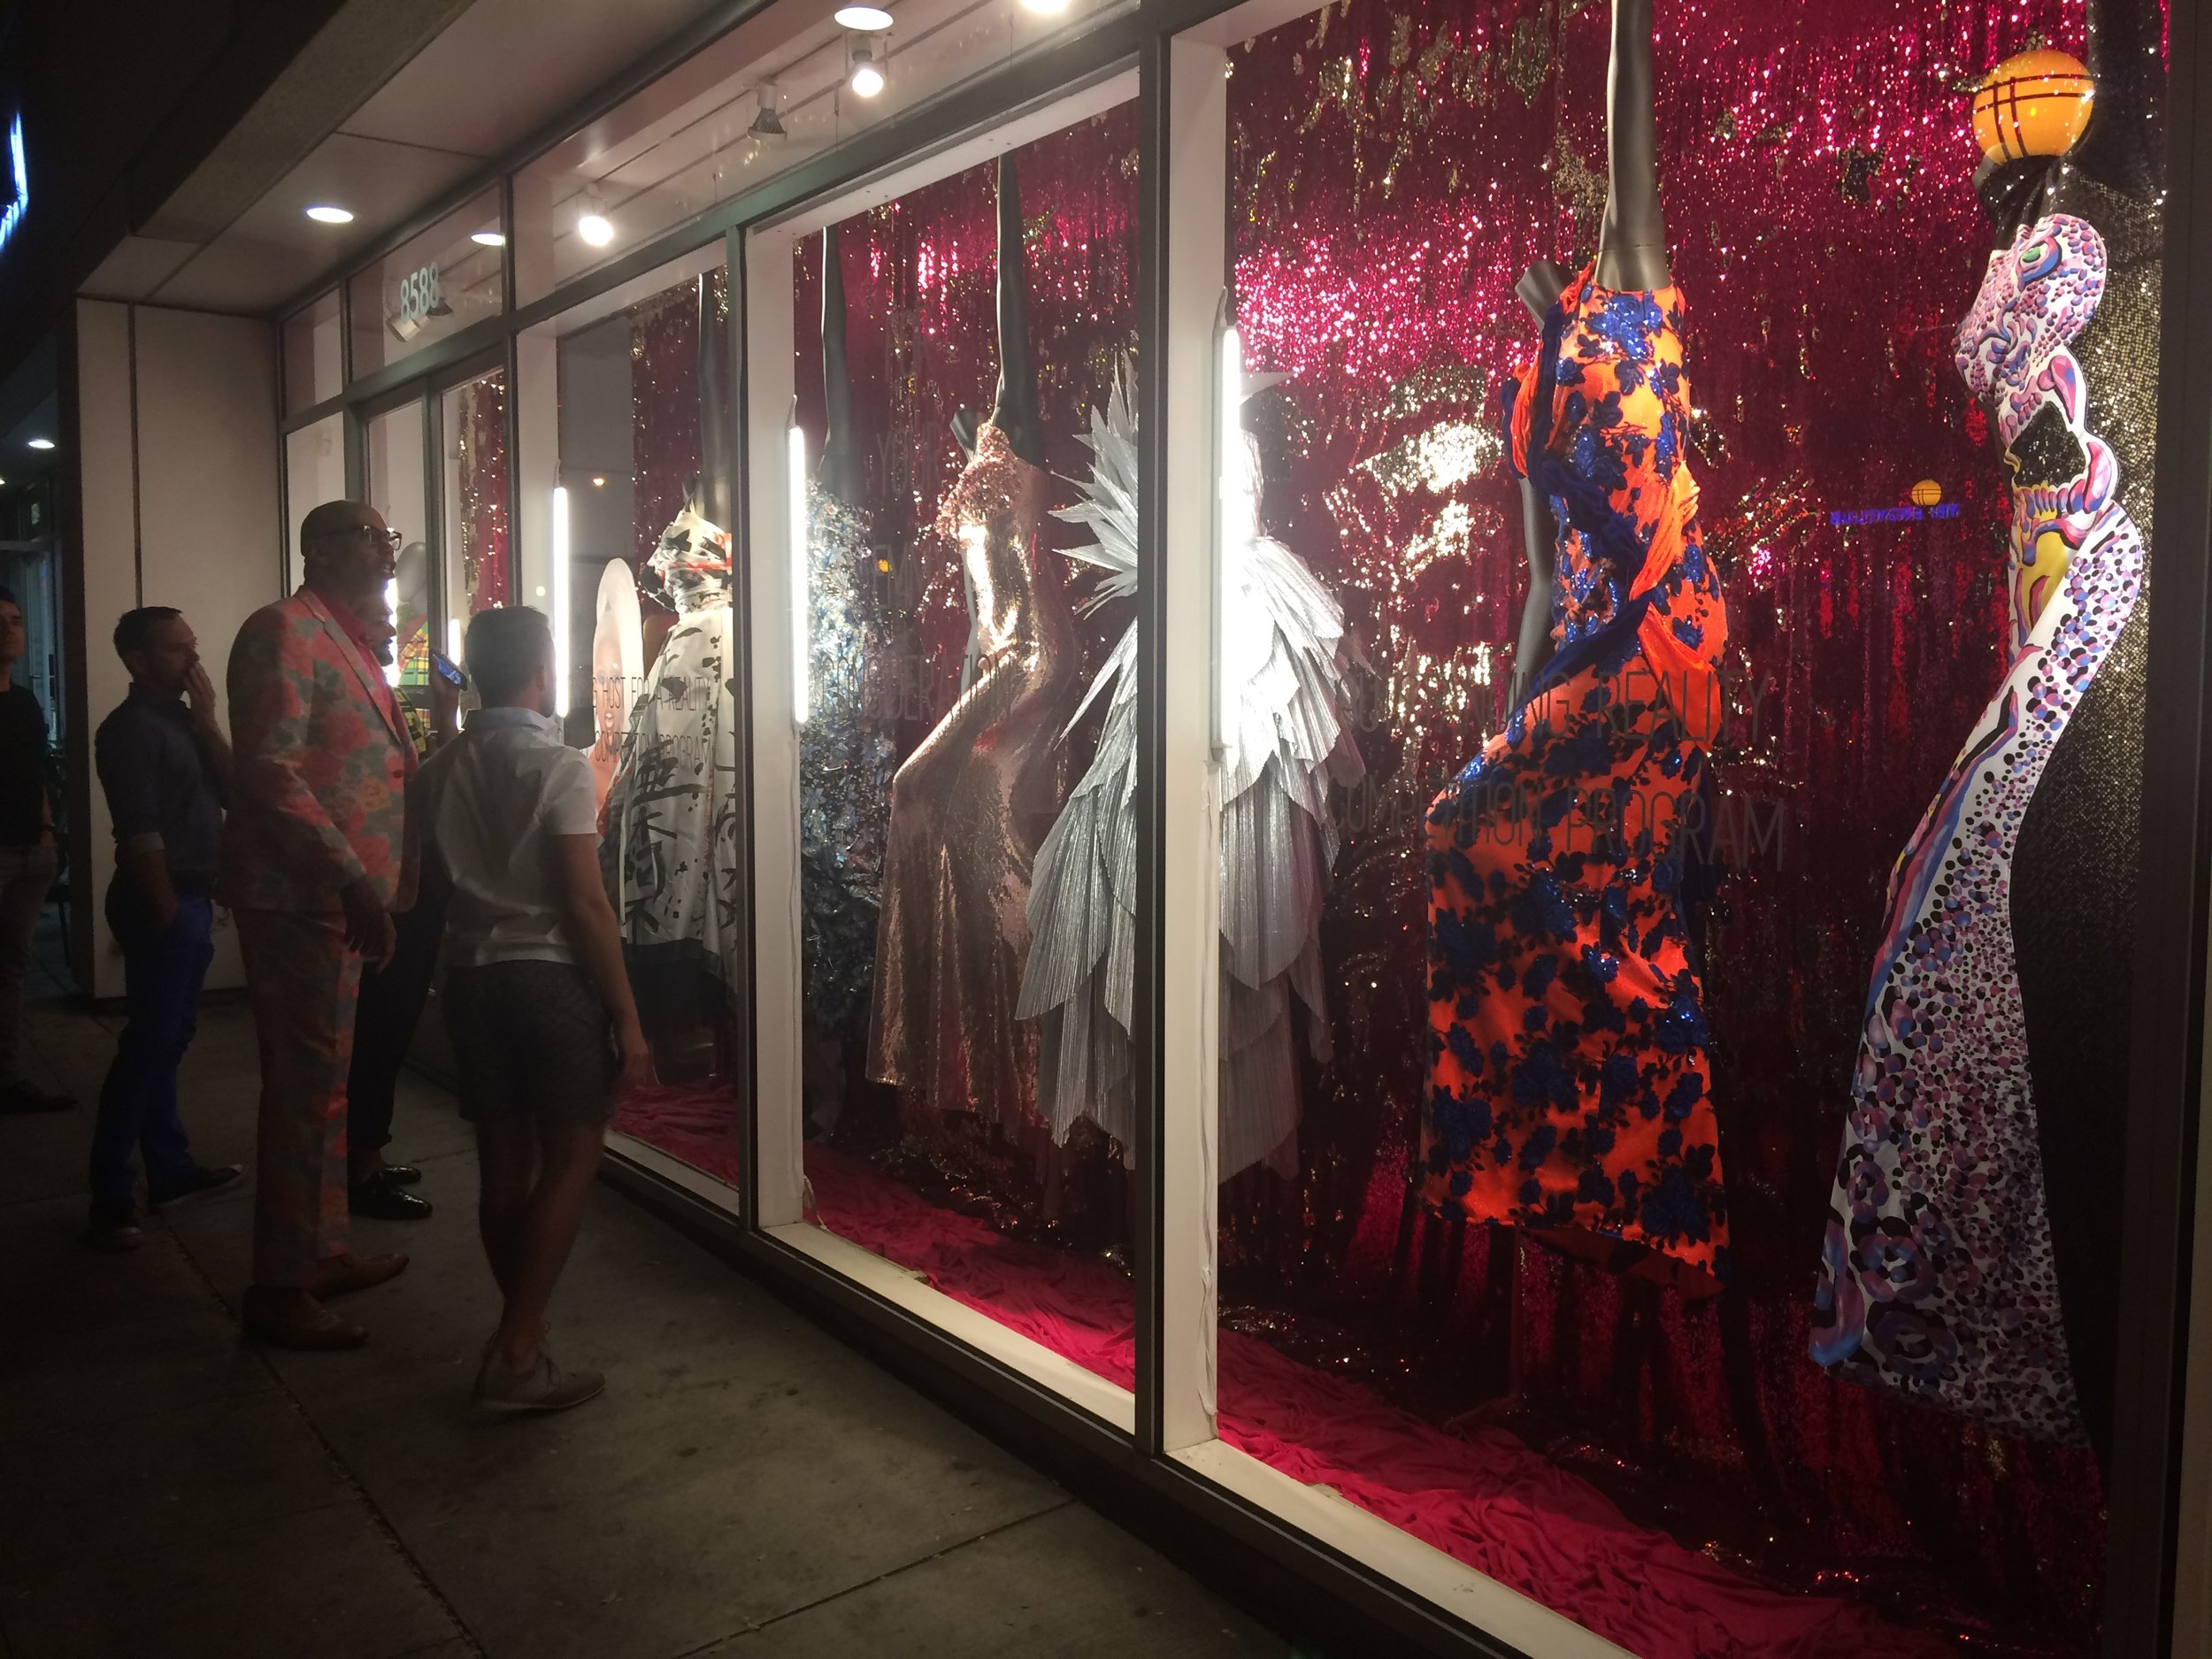 RuPaul checks out the window display of his Drag Race dresses